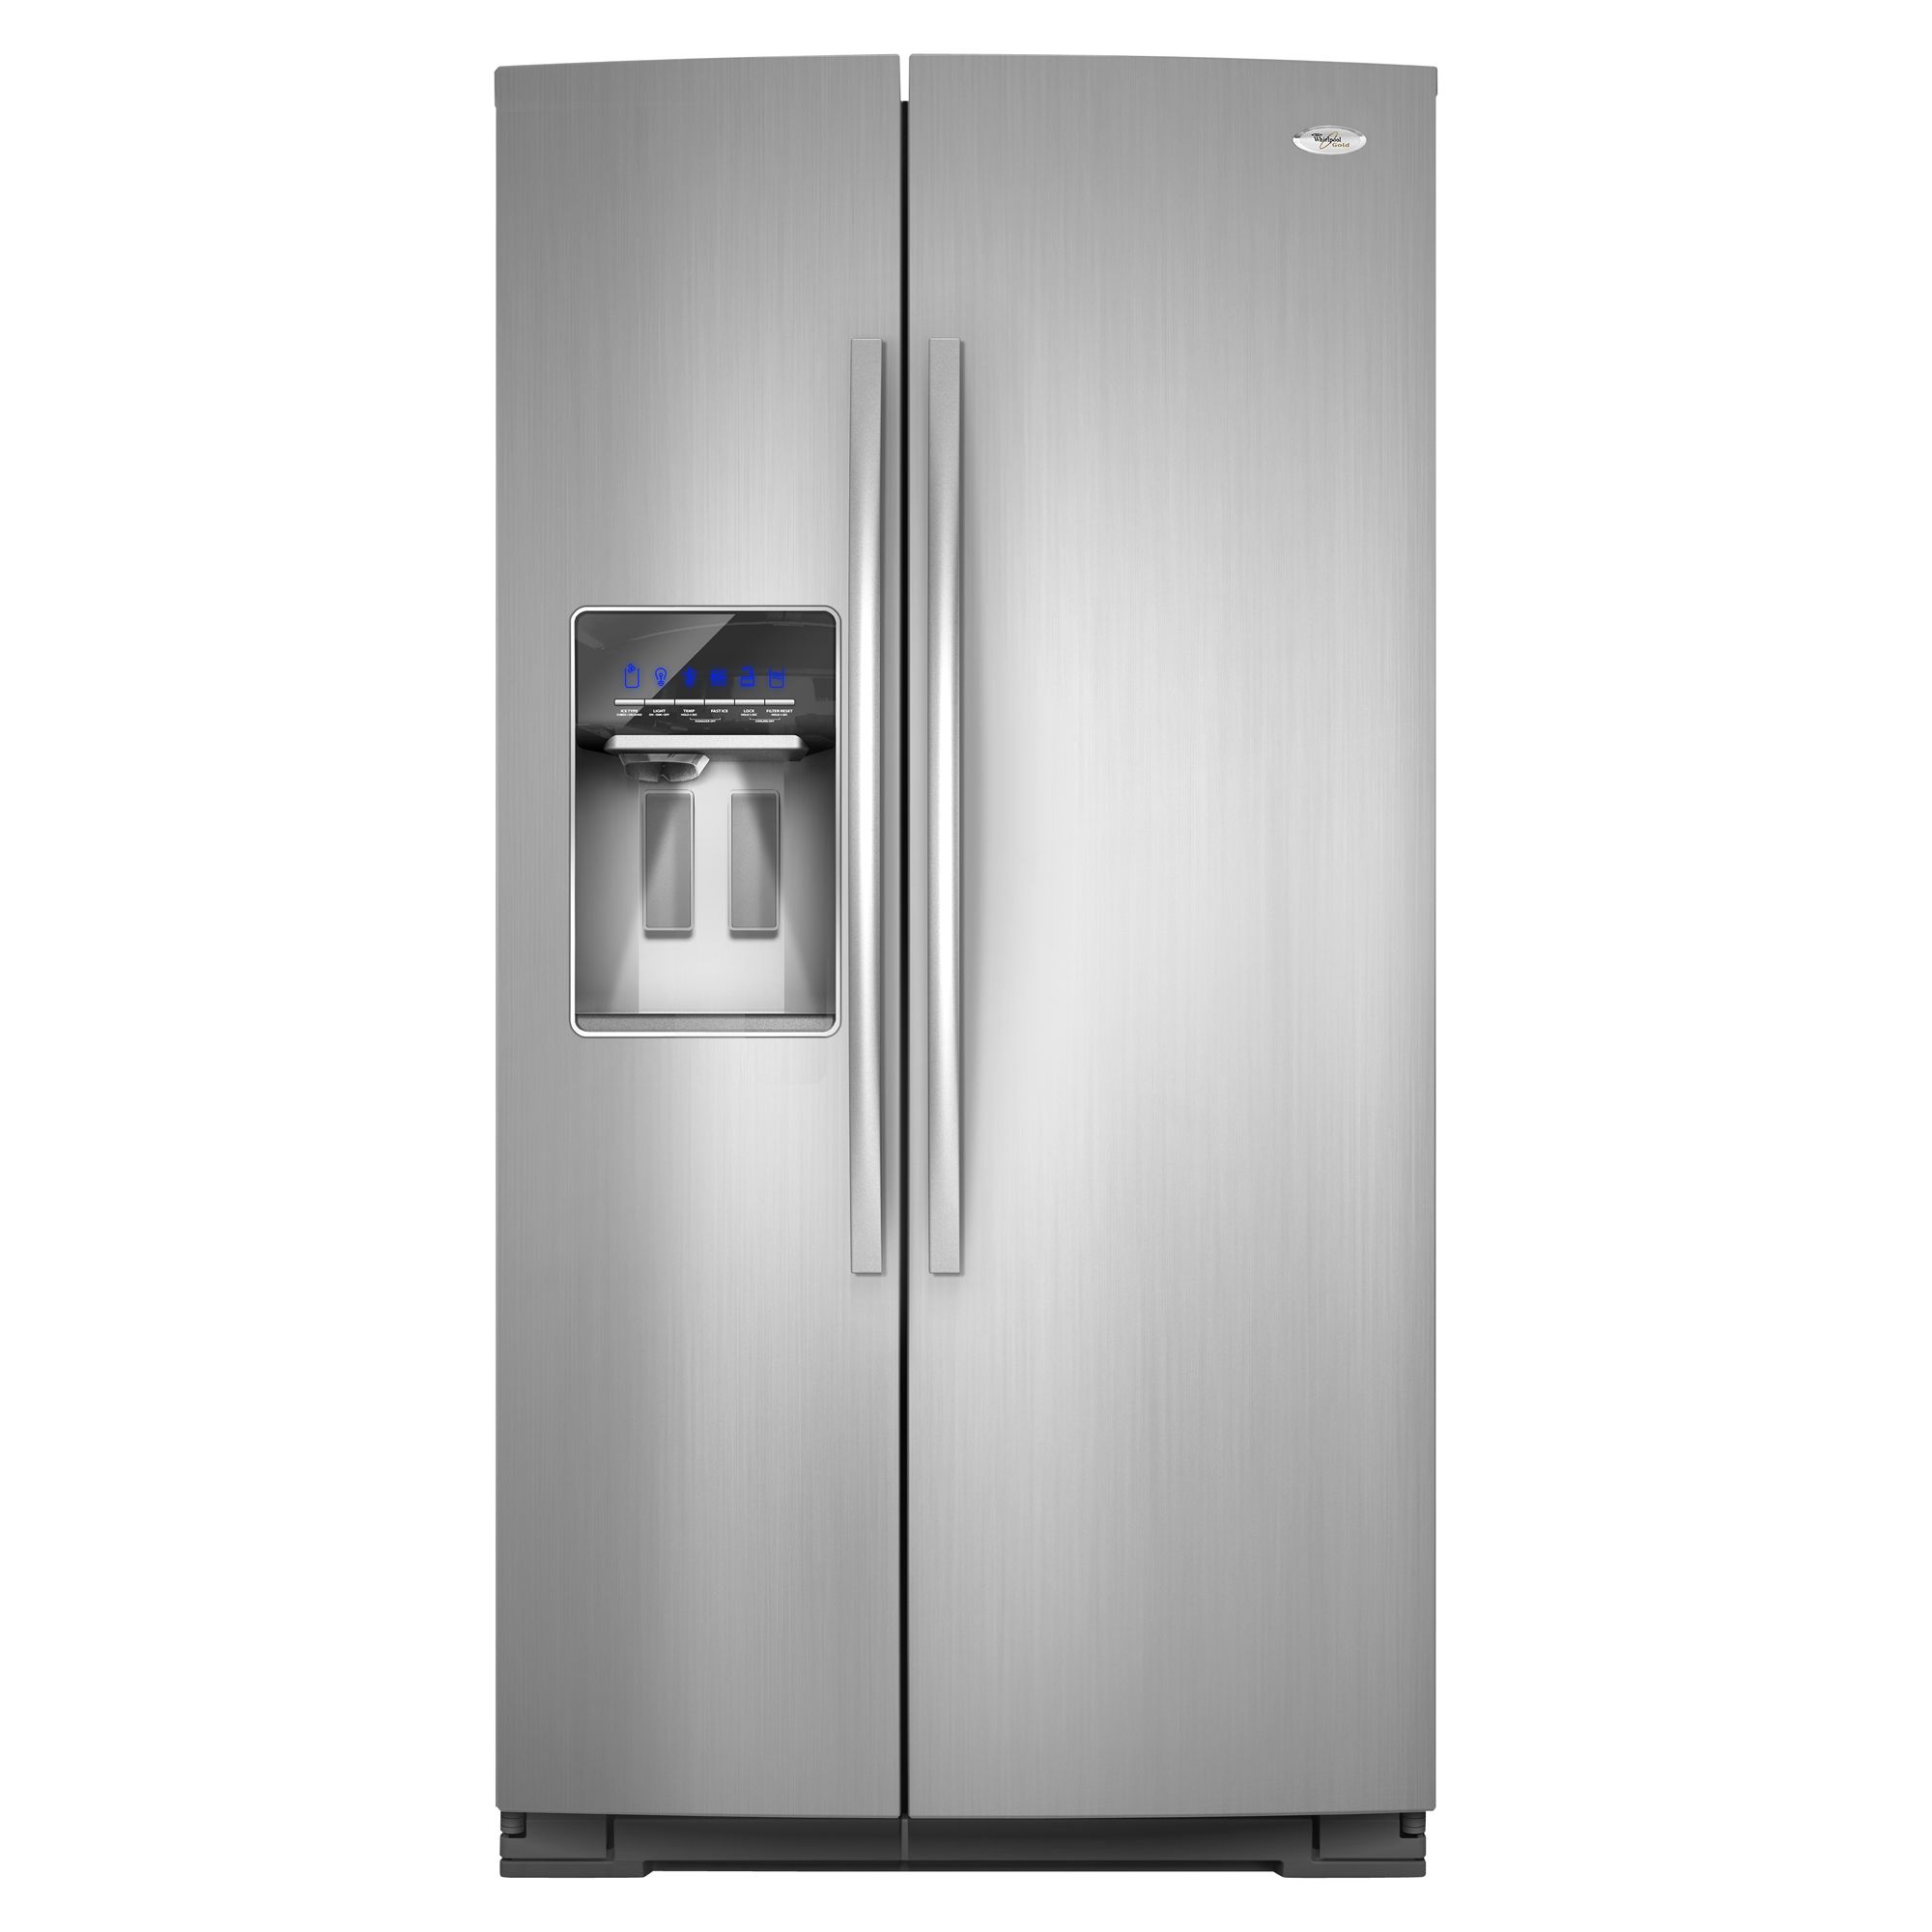 Whirlpool 26.4 cu. ft. Side-by-Side Refrigerator